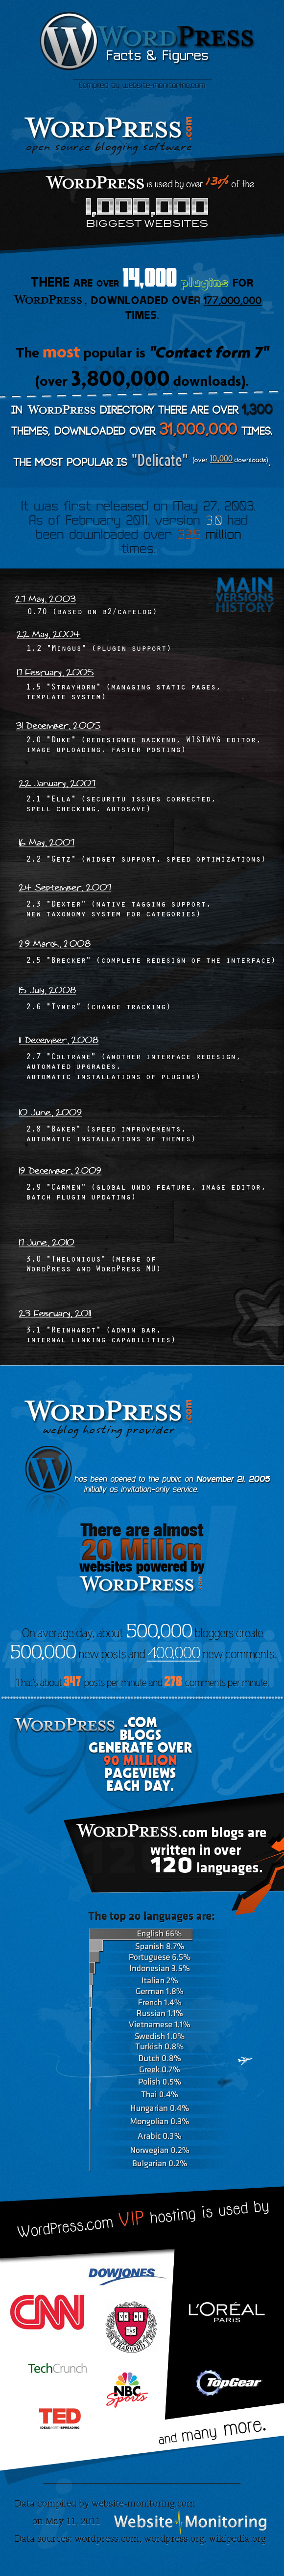 WordPress facts and figures